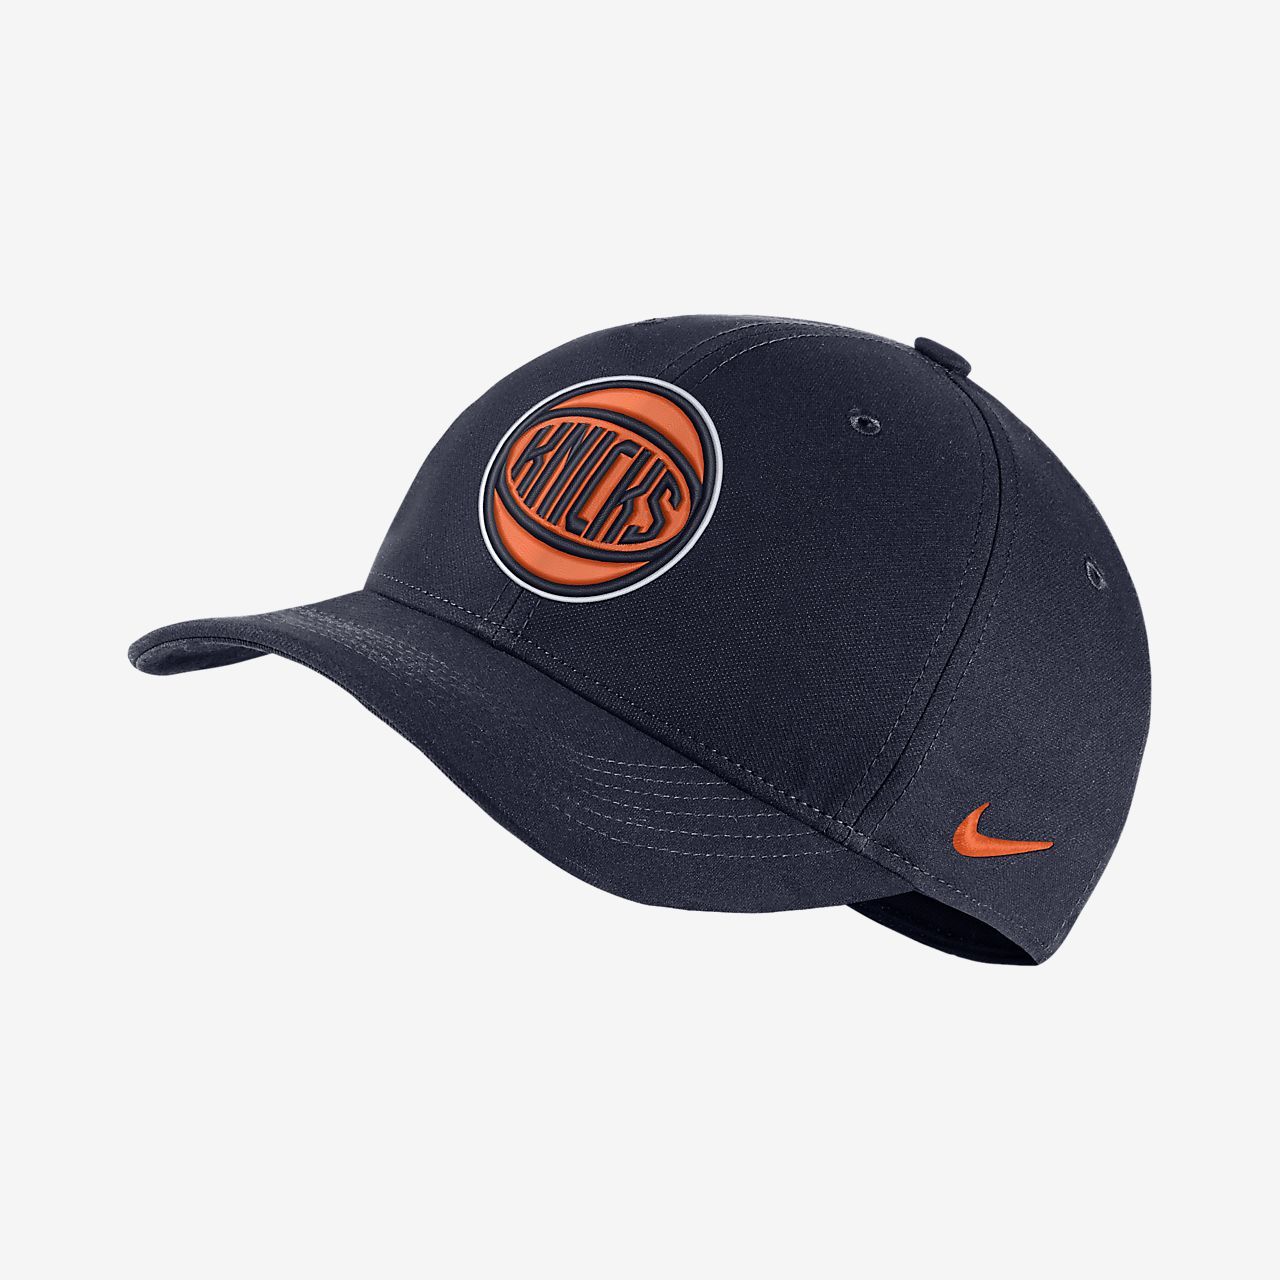 Gorra New York Knicks City Edition Nike AeroBill Classic99 NBA. Nike ... cdfdf645474